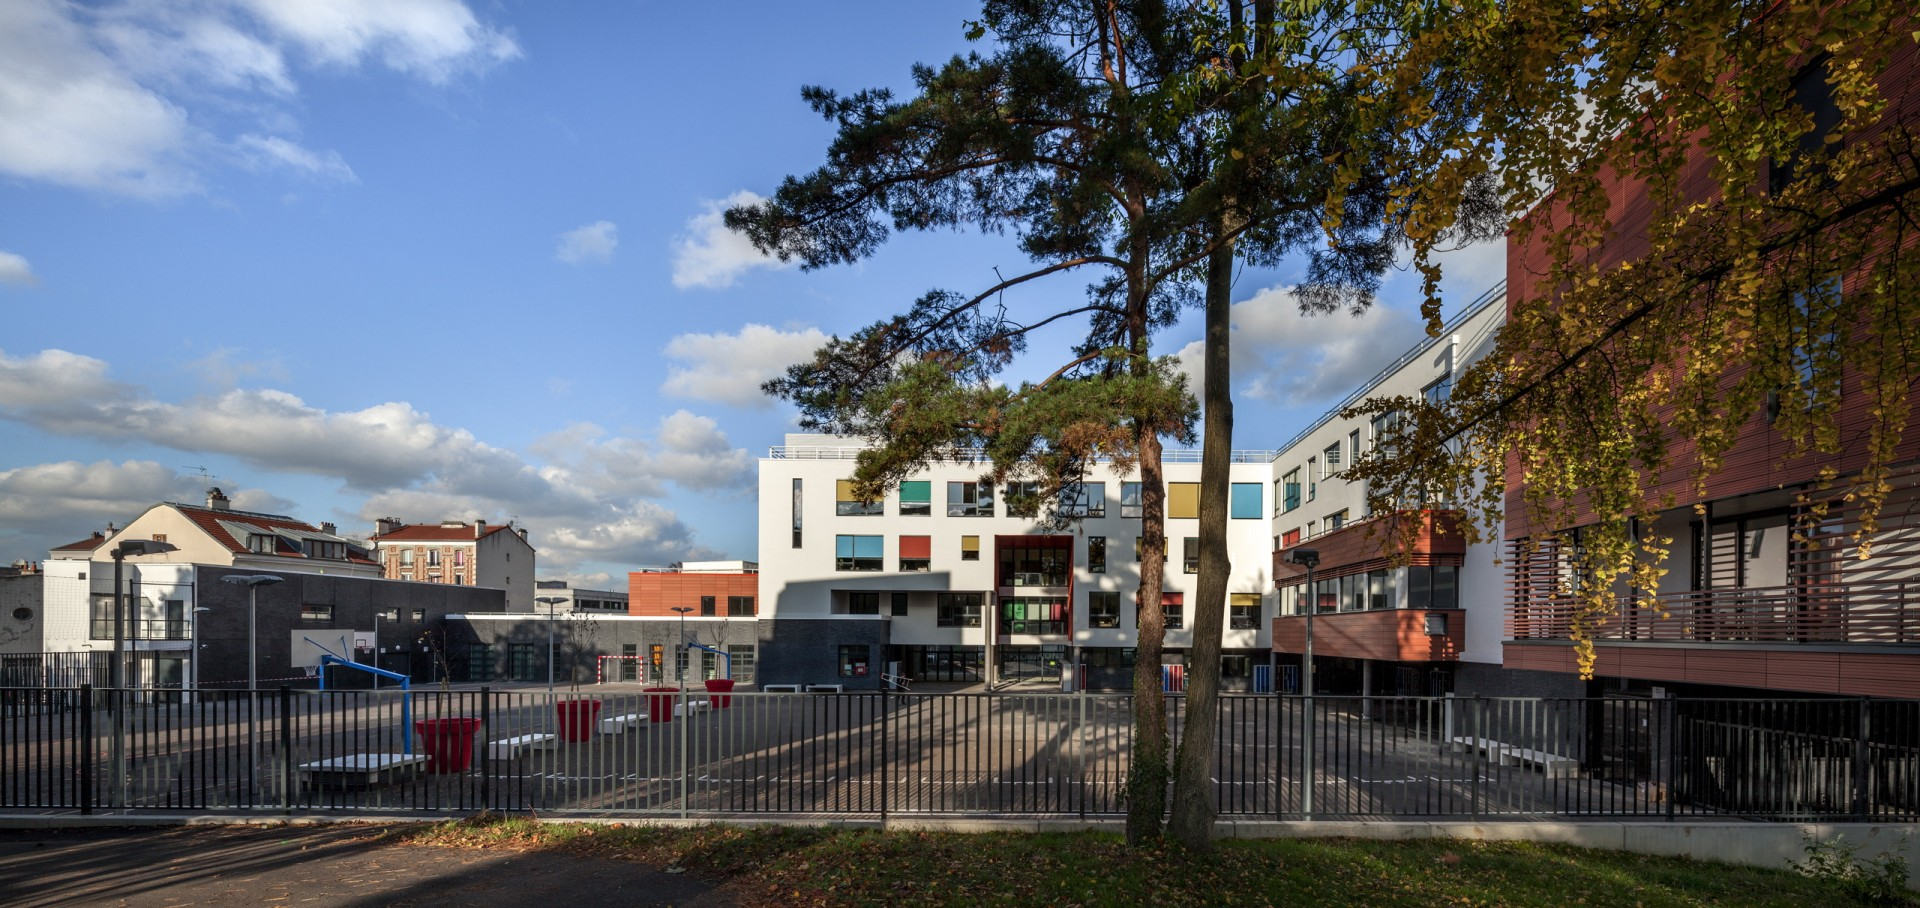 College J.B.Corot-Le Raincy-16